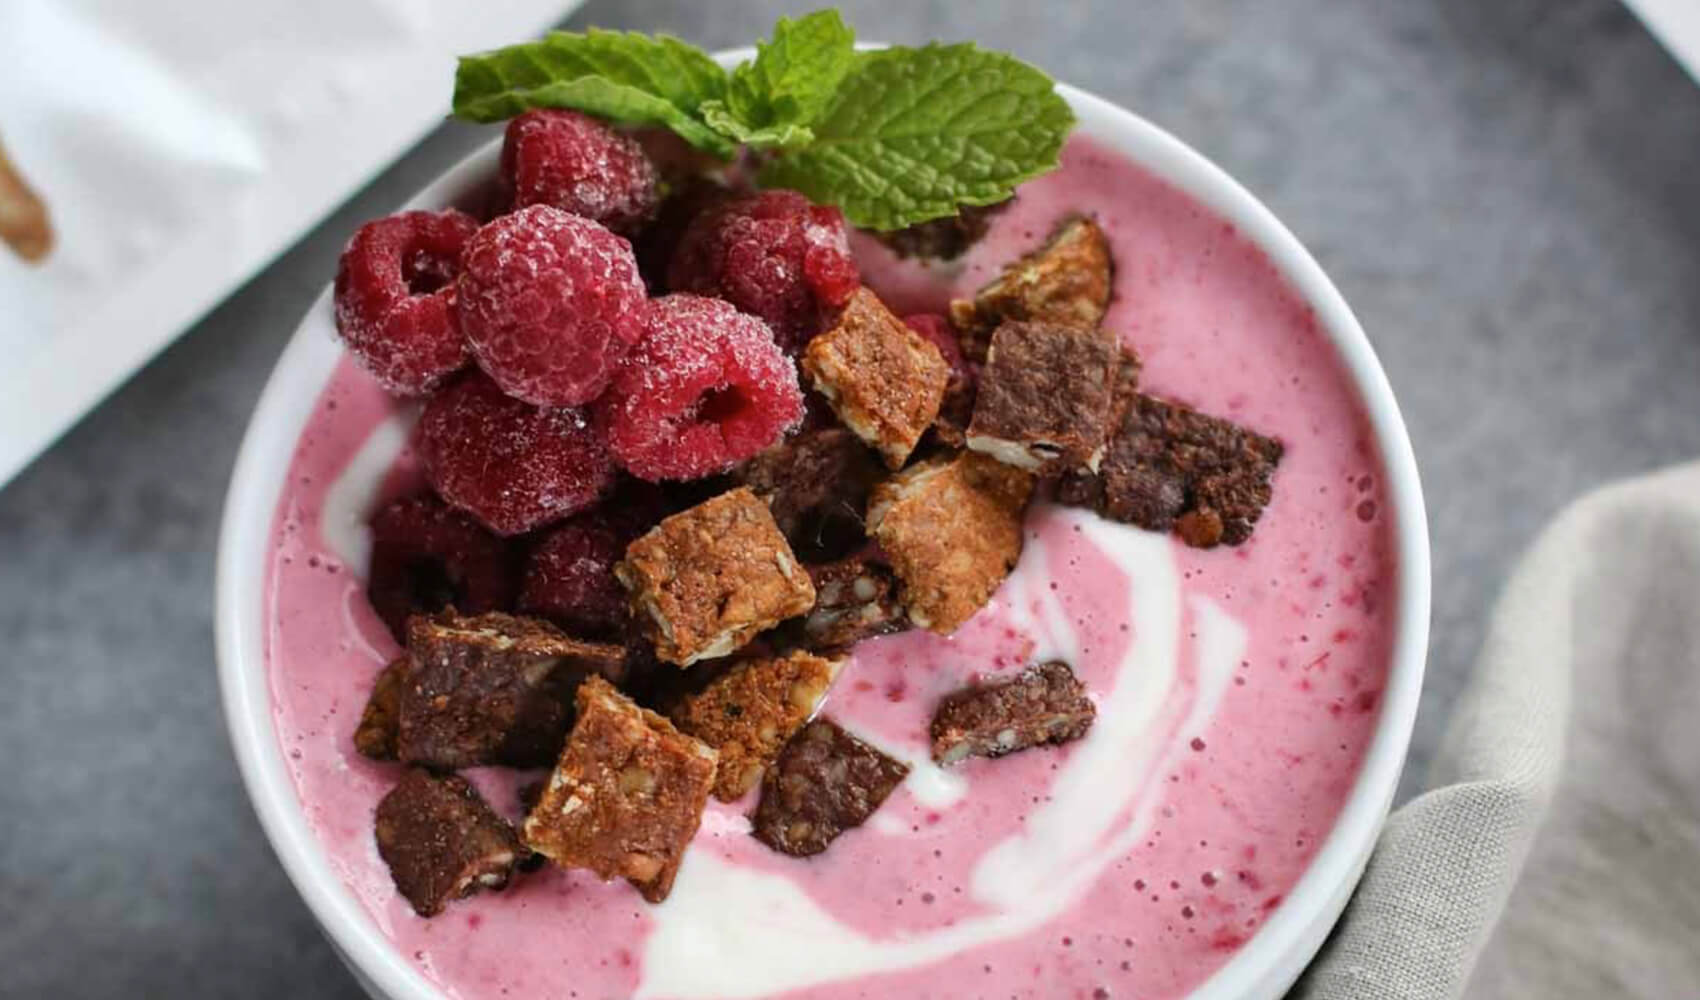 3-Ingredient Smoothie Bowl